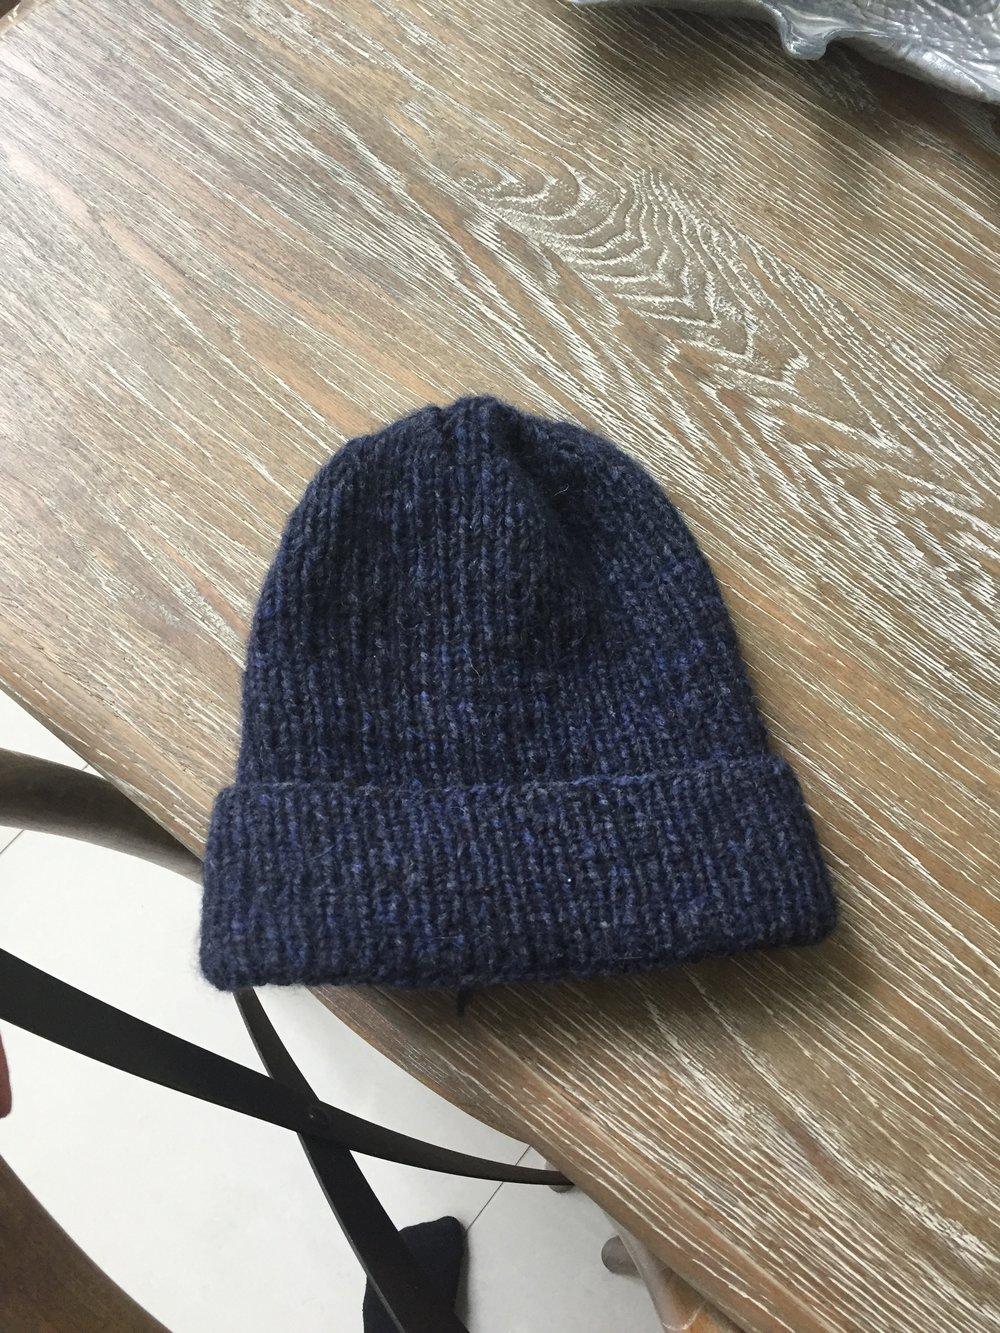 So here is as far as I have gotten with my knitting project - my second ever beanie (but the first one that has been  wearable, hehe)